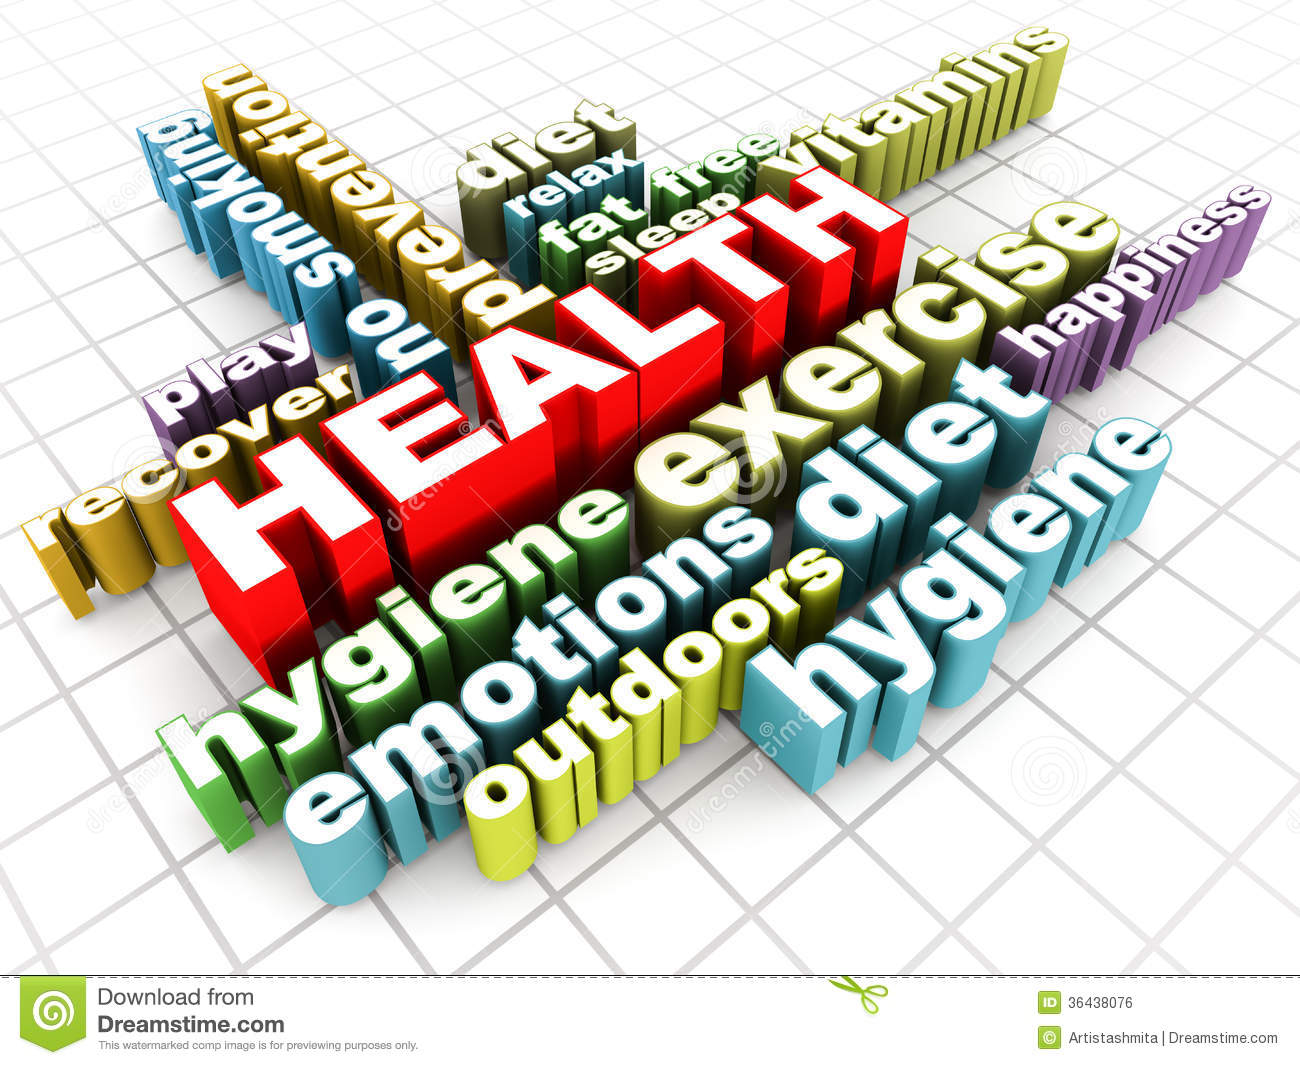 Health Care Royalty Free Stock Image - Image: 36438076